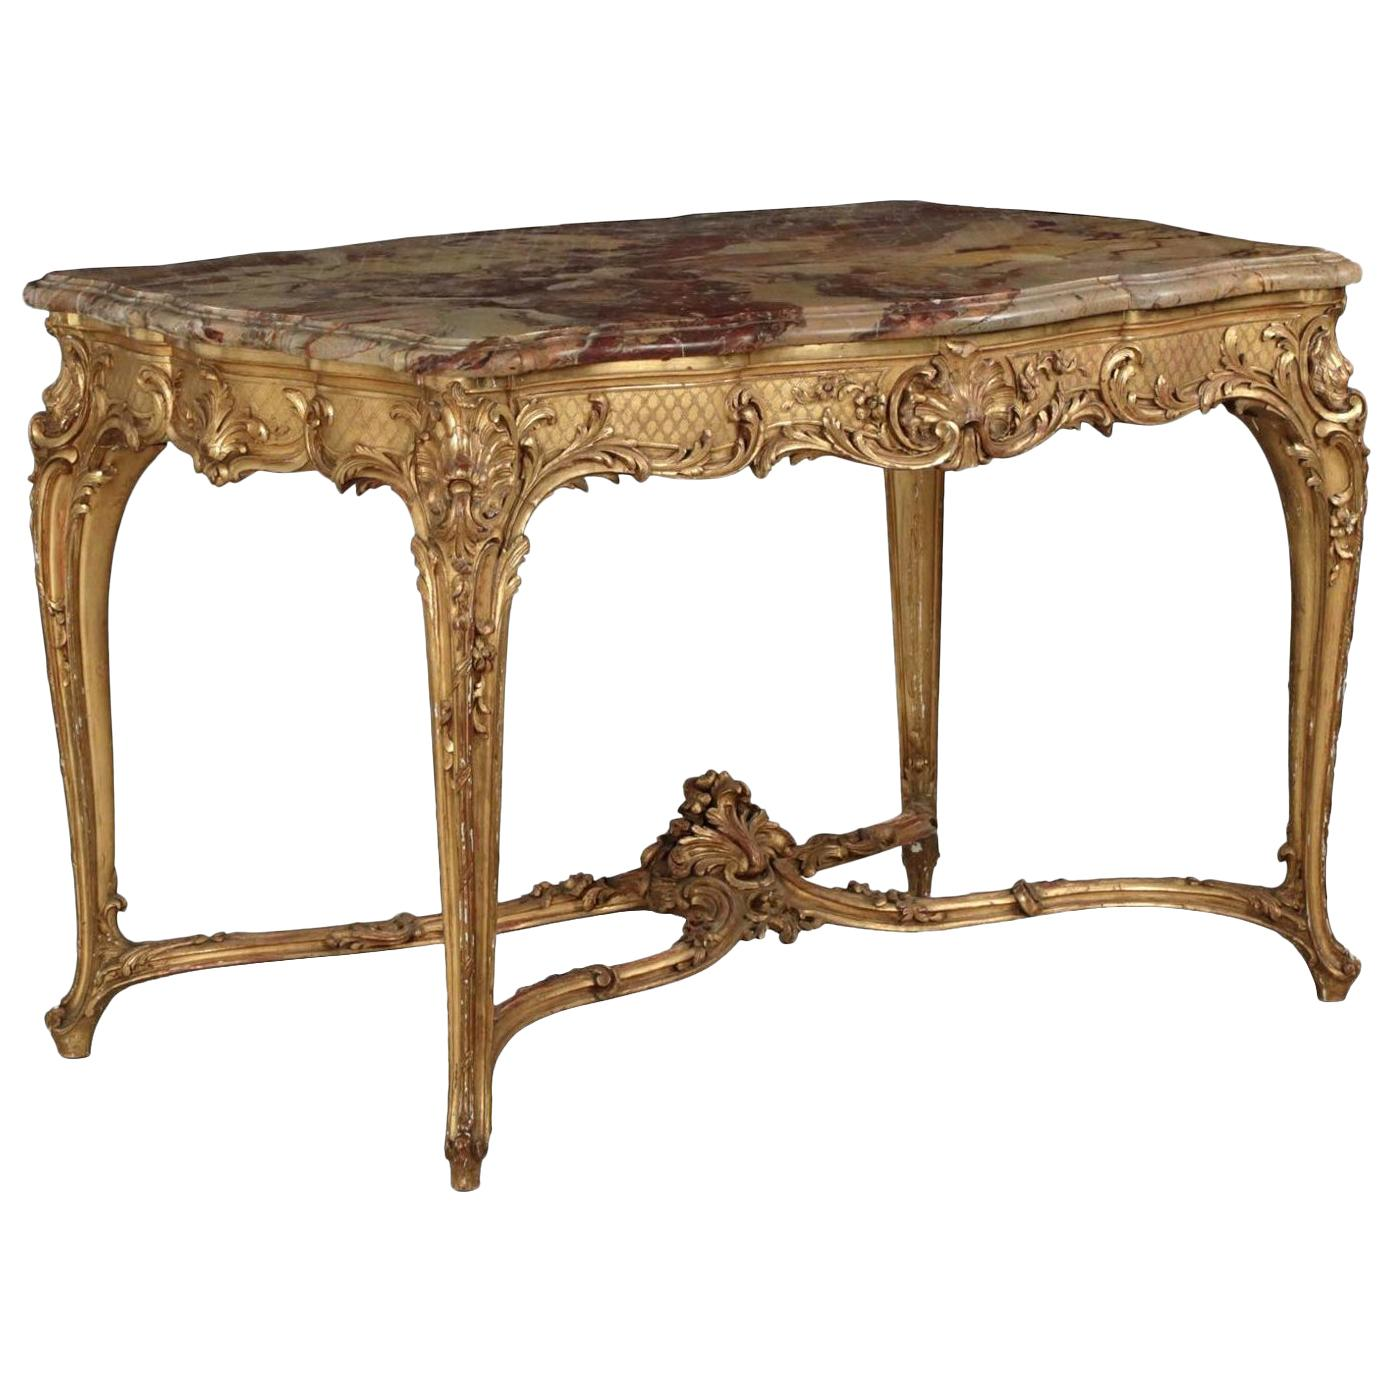 French Louis XV Style Marble-Top, Giltwood Center Table, Paris, circa 1880